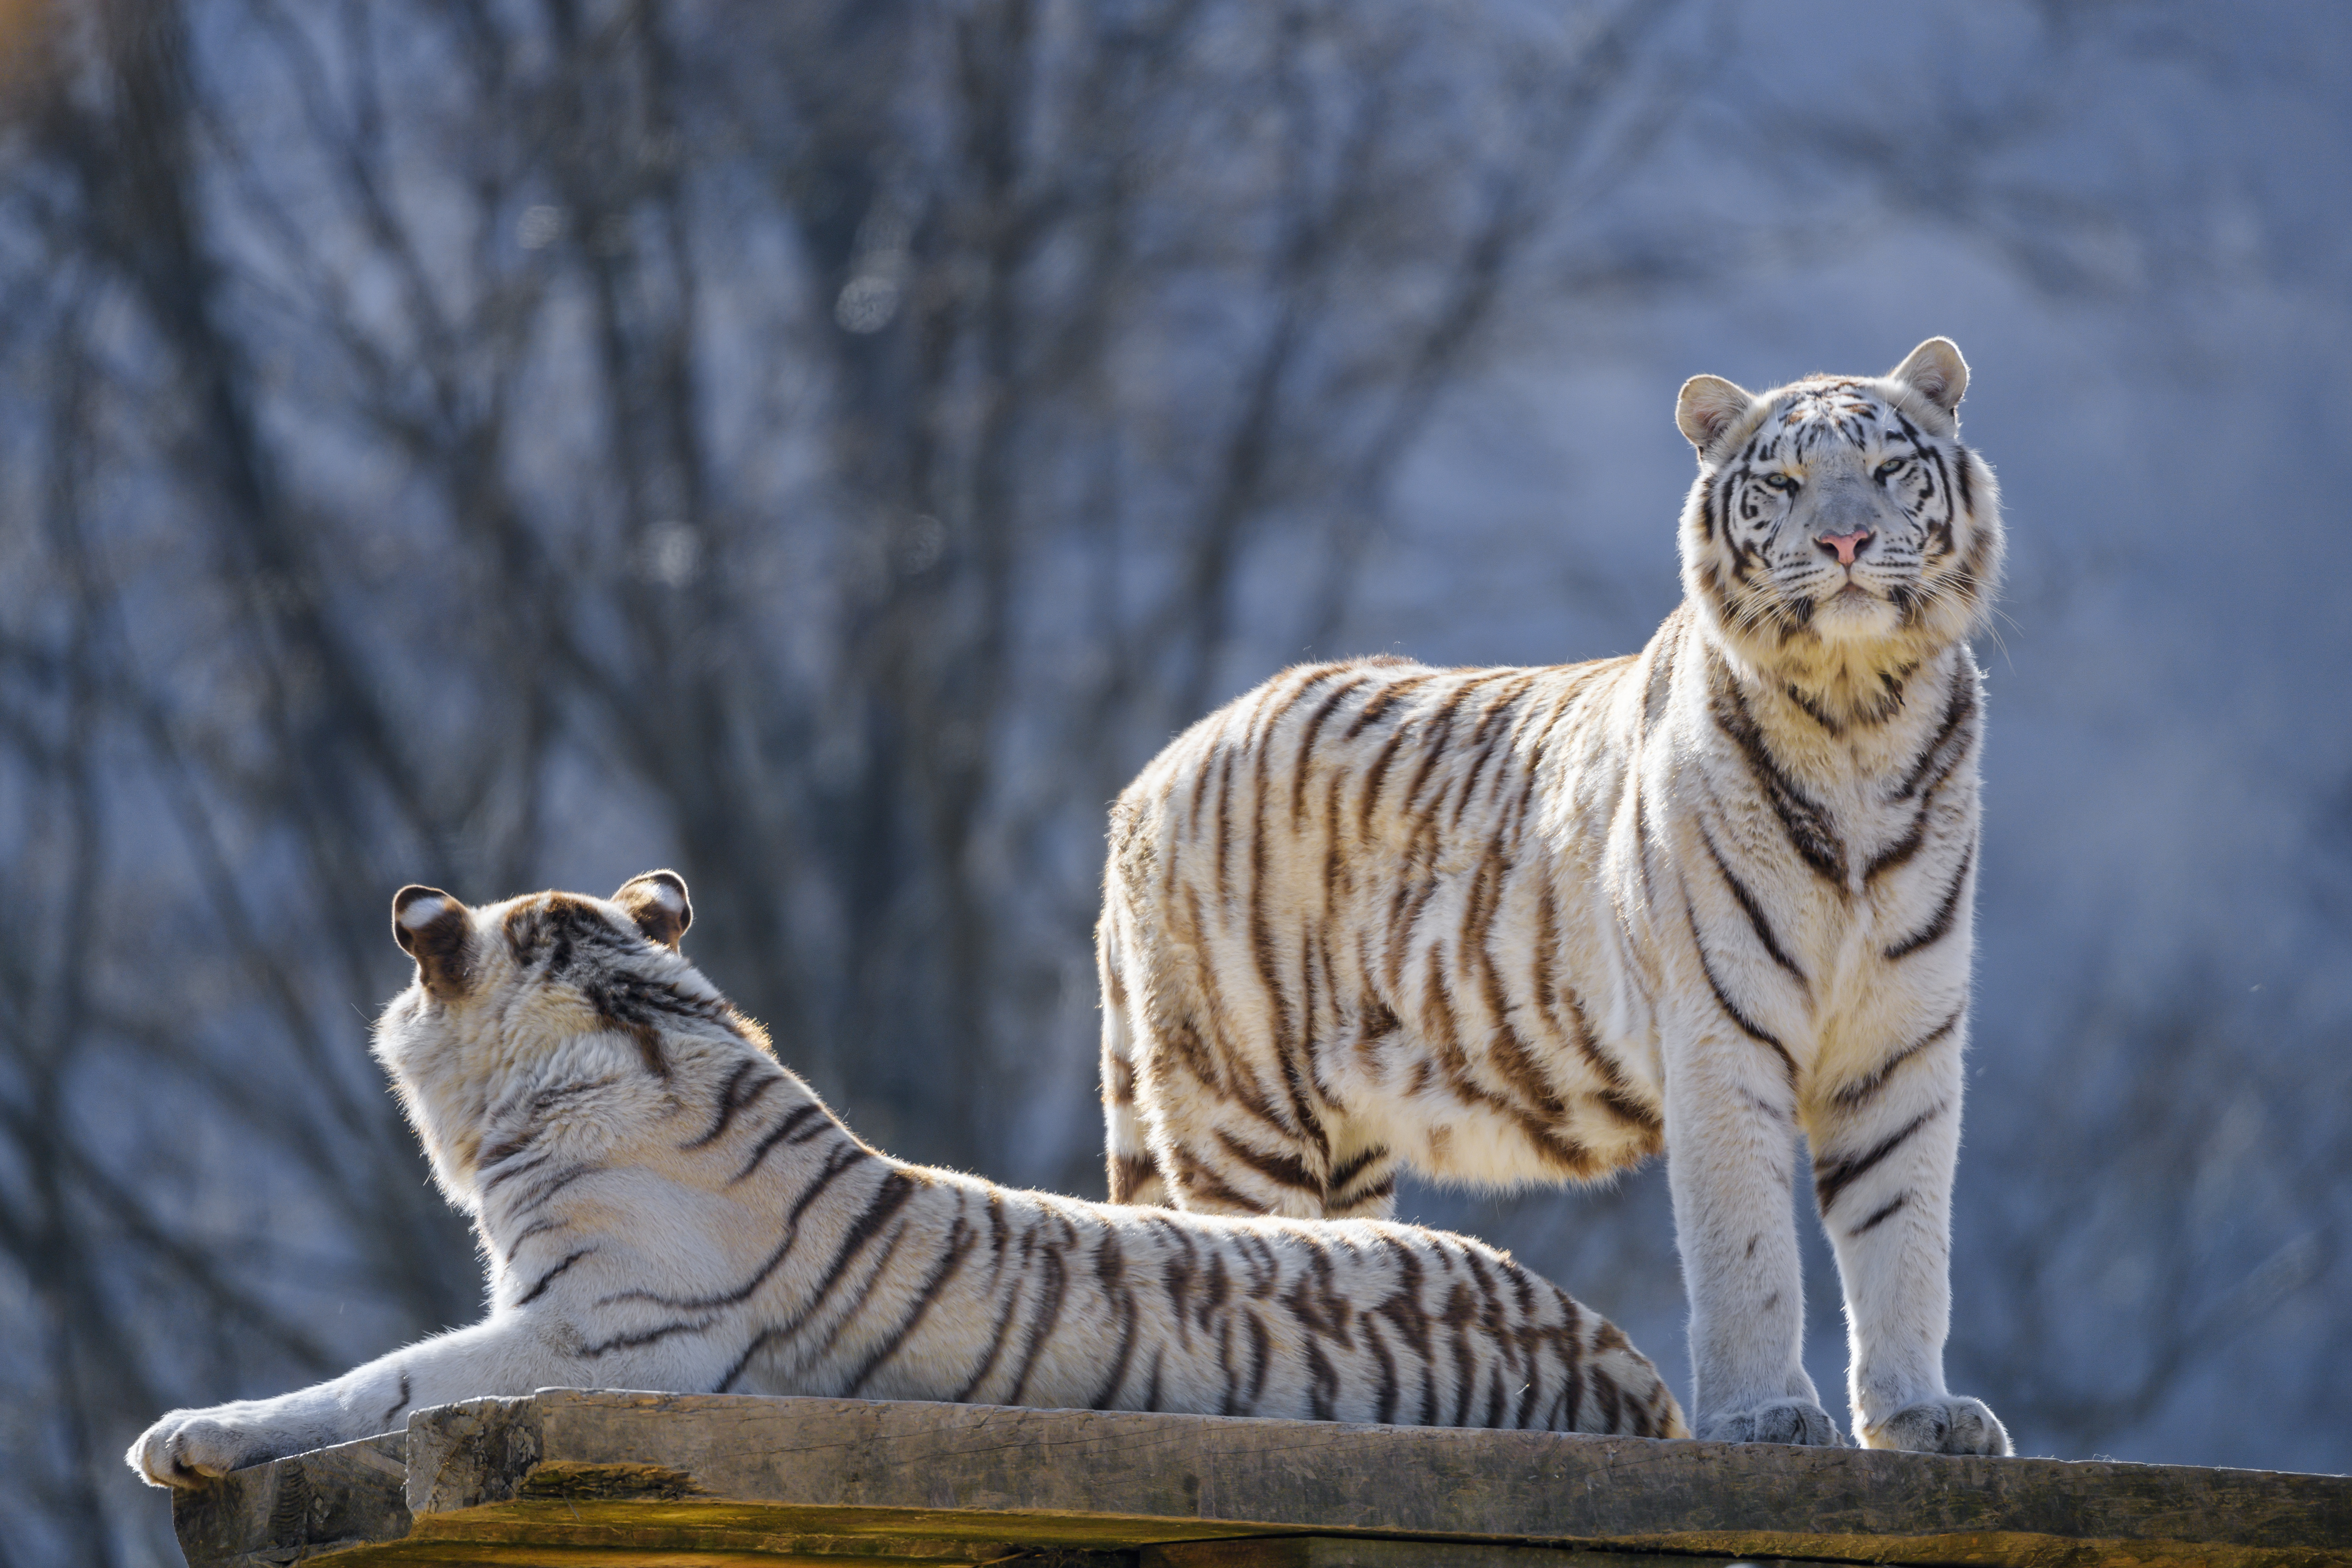 144493 Screensavers and Wallpapers Predators for phone. Download Animals, Tigers, Predators, Bengal Tigers pictures for free